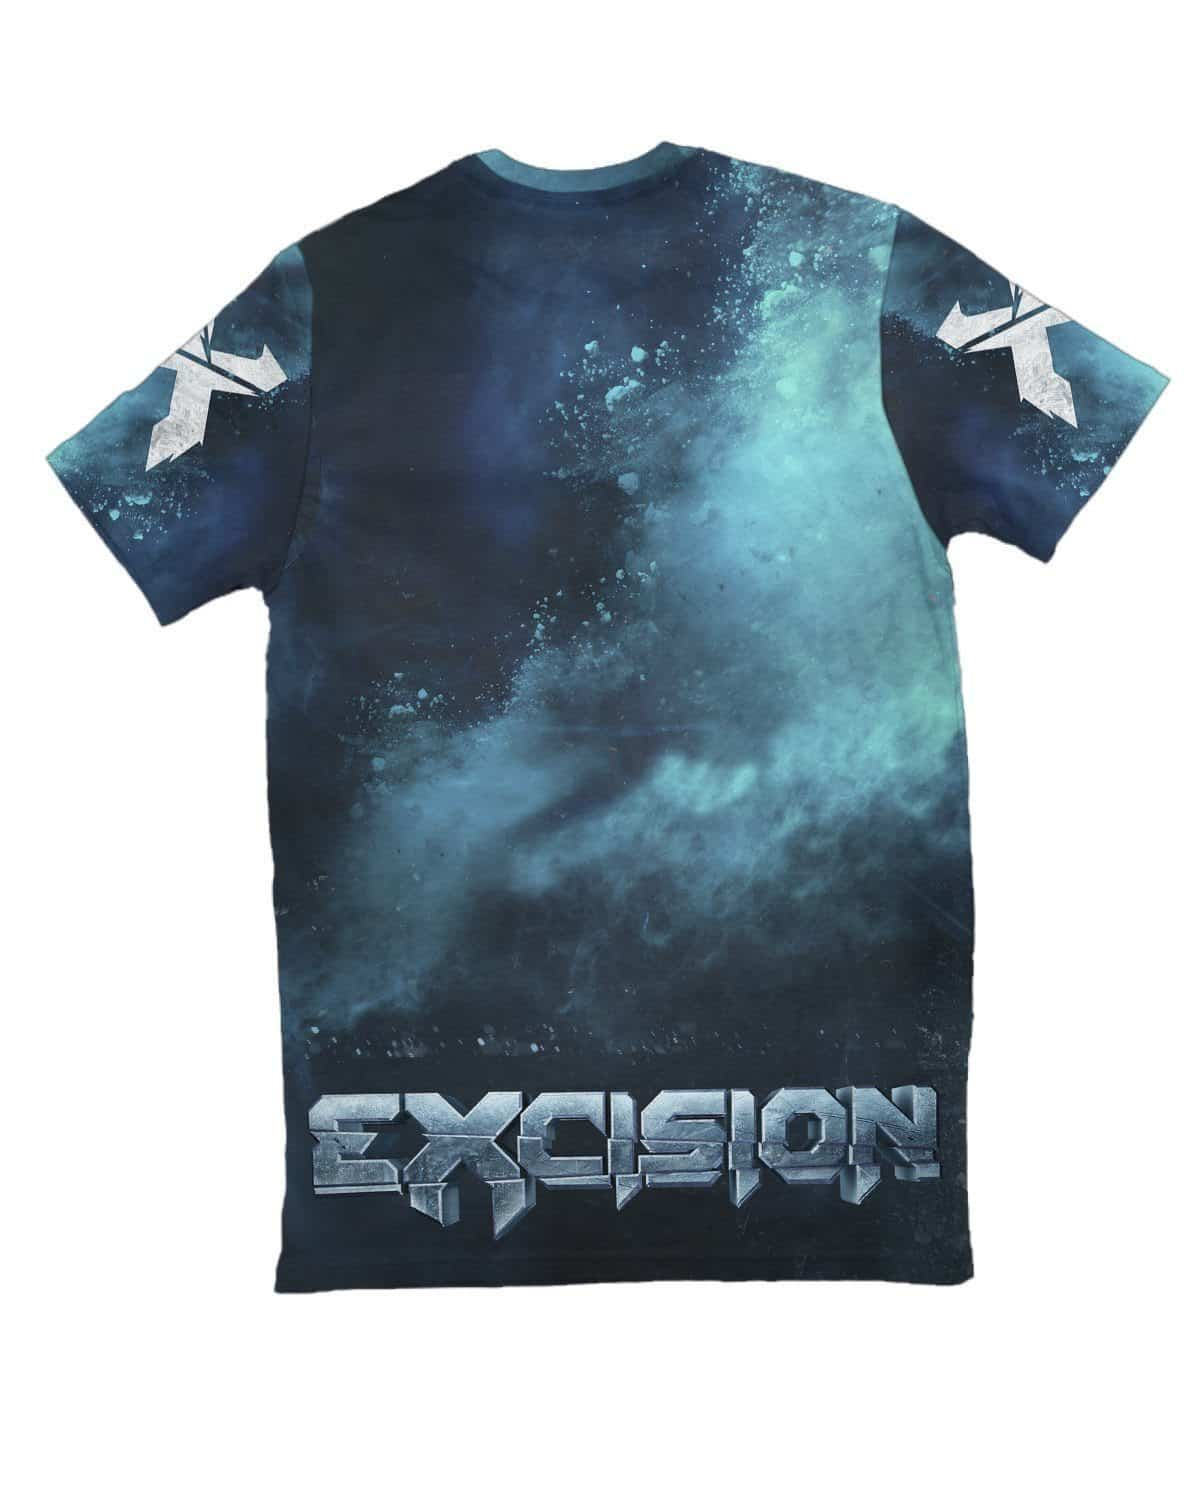 Excision Virus X Hazard Unisex Tee